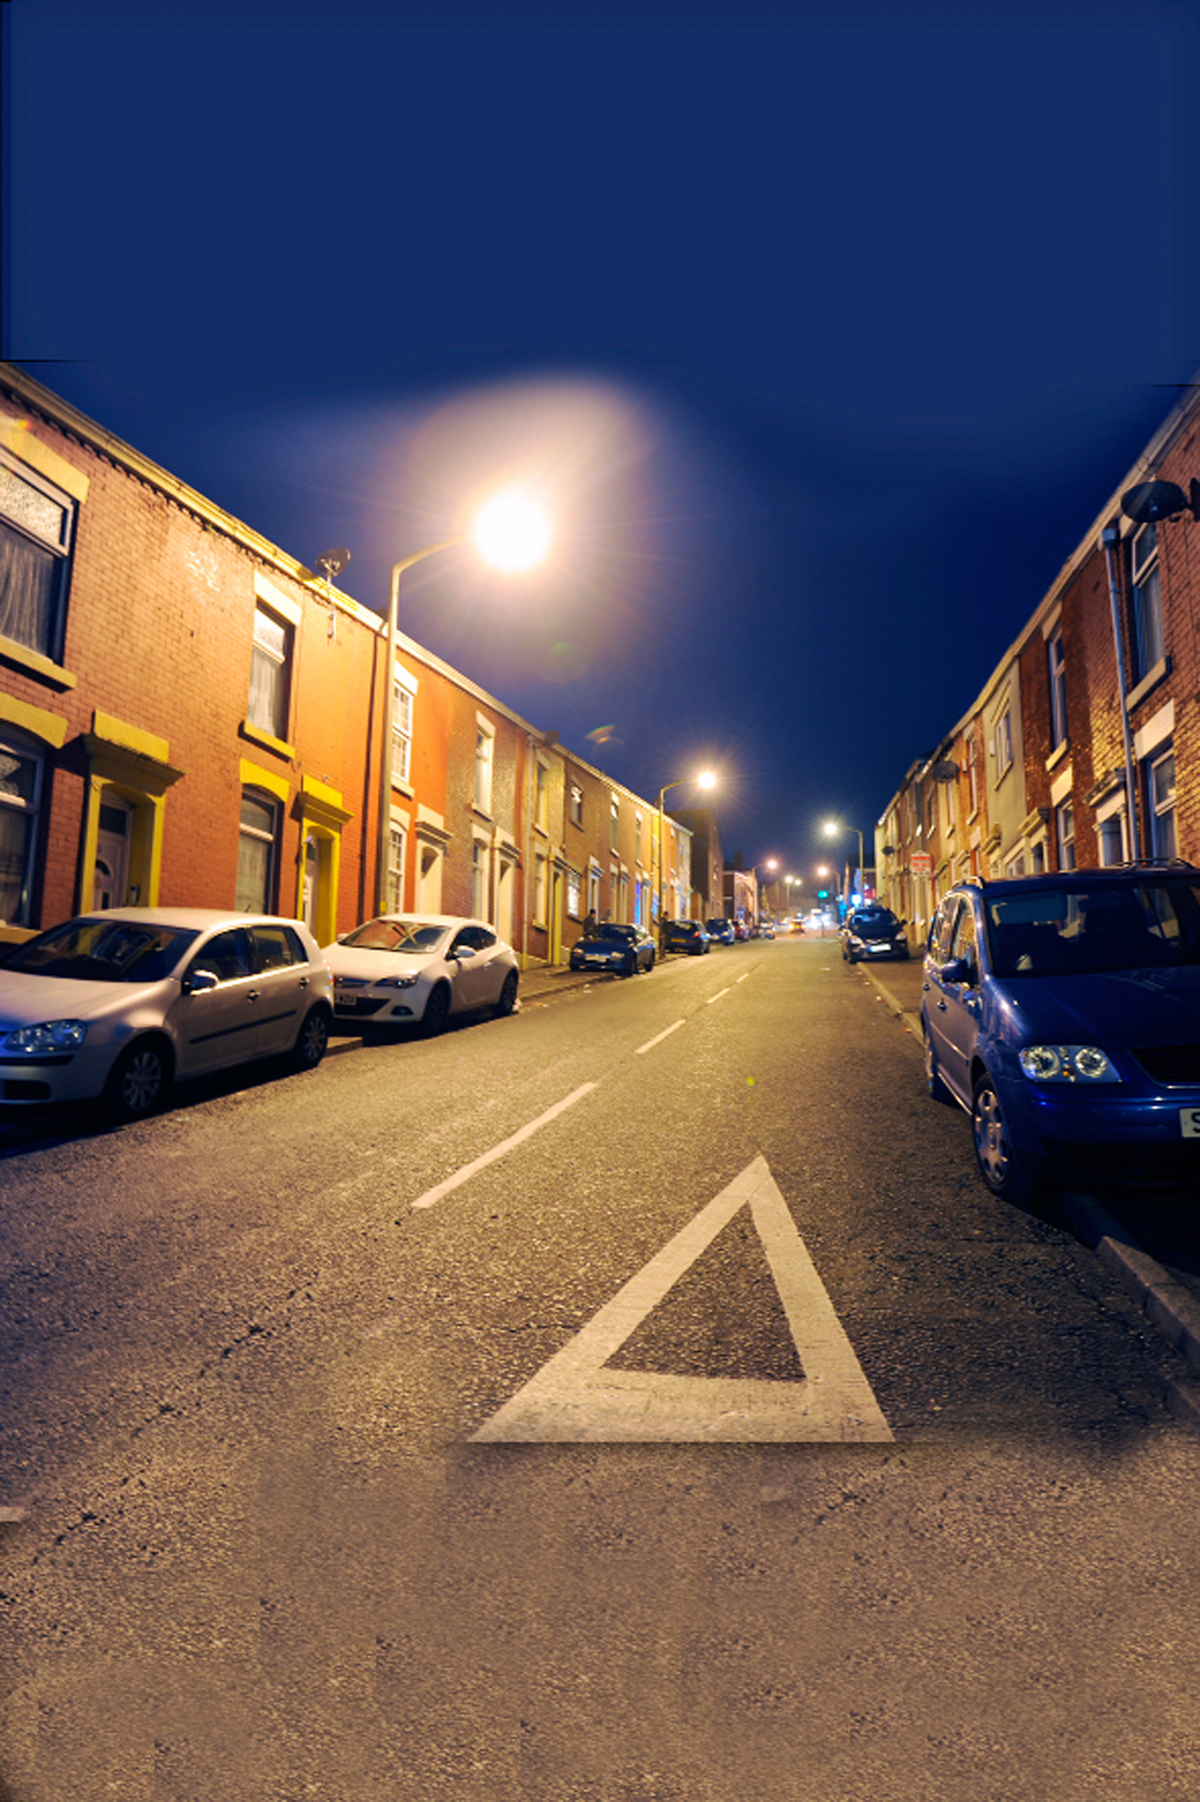 Earl Street in Blackburn under street lights